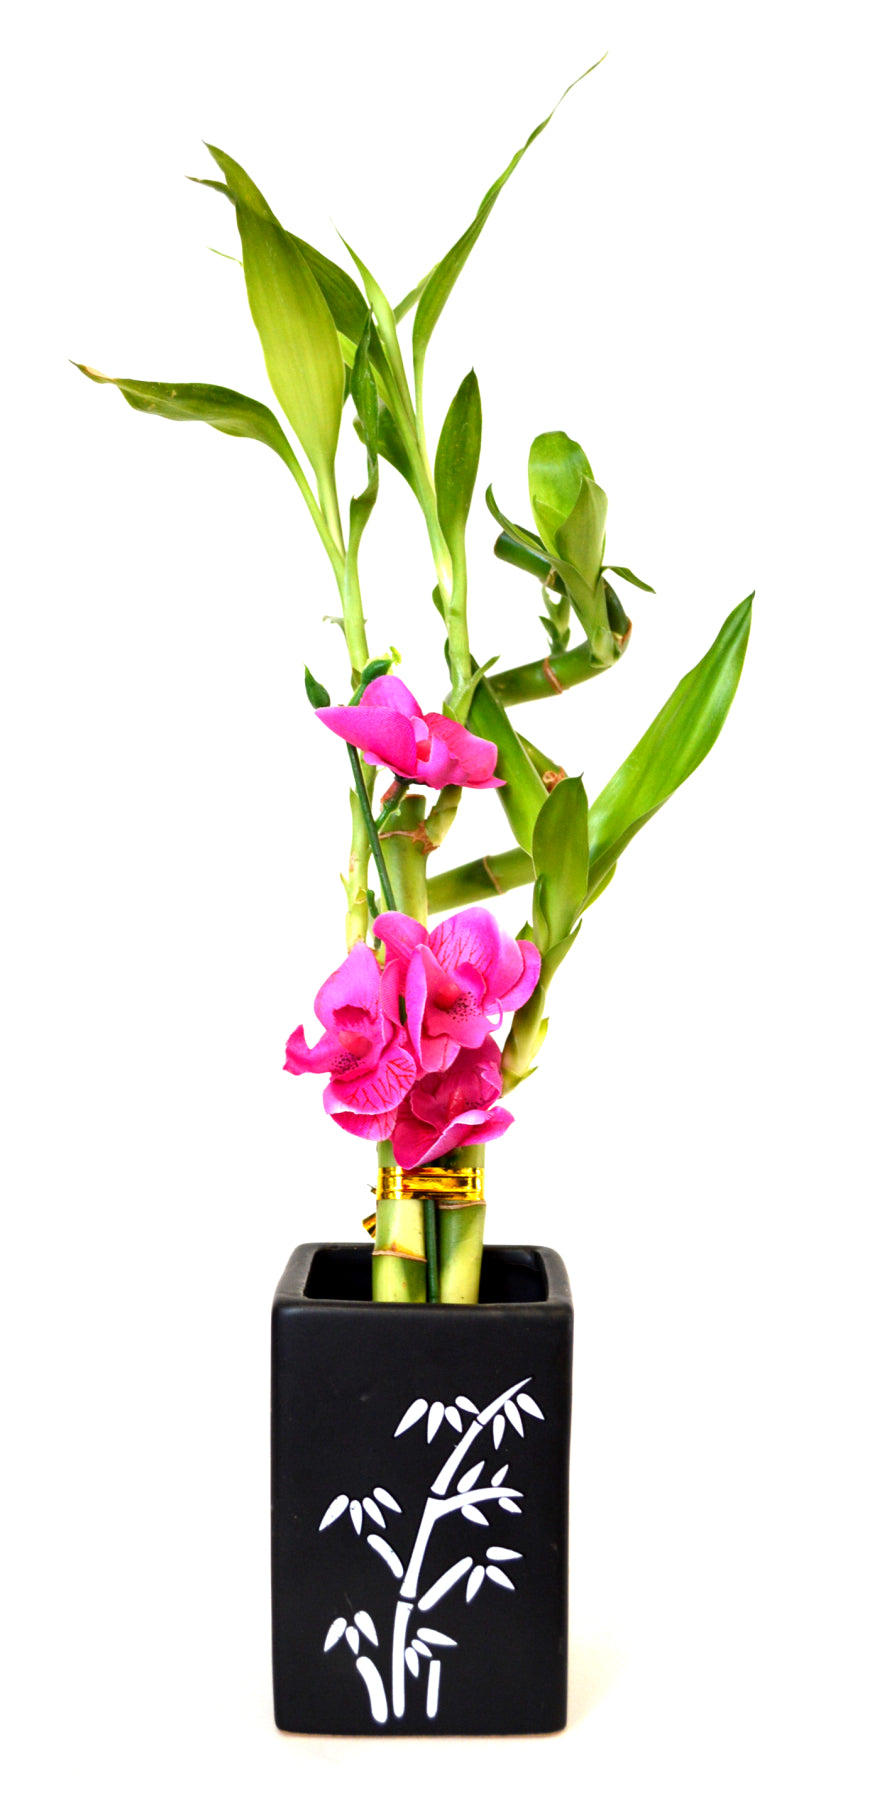 9GreenBox - Lucky Bamboo Spiral Style with Silk Flowers and Black Ceramic Vase - 9GreenBox